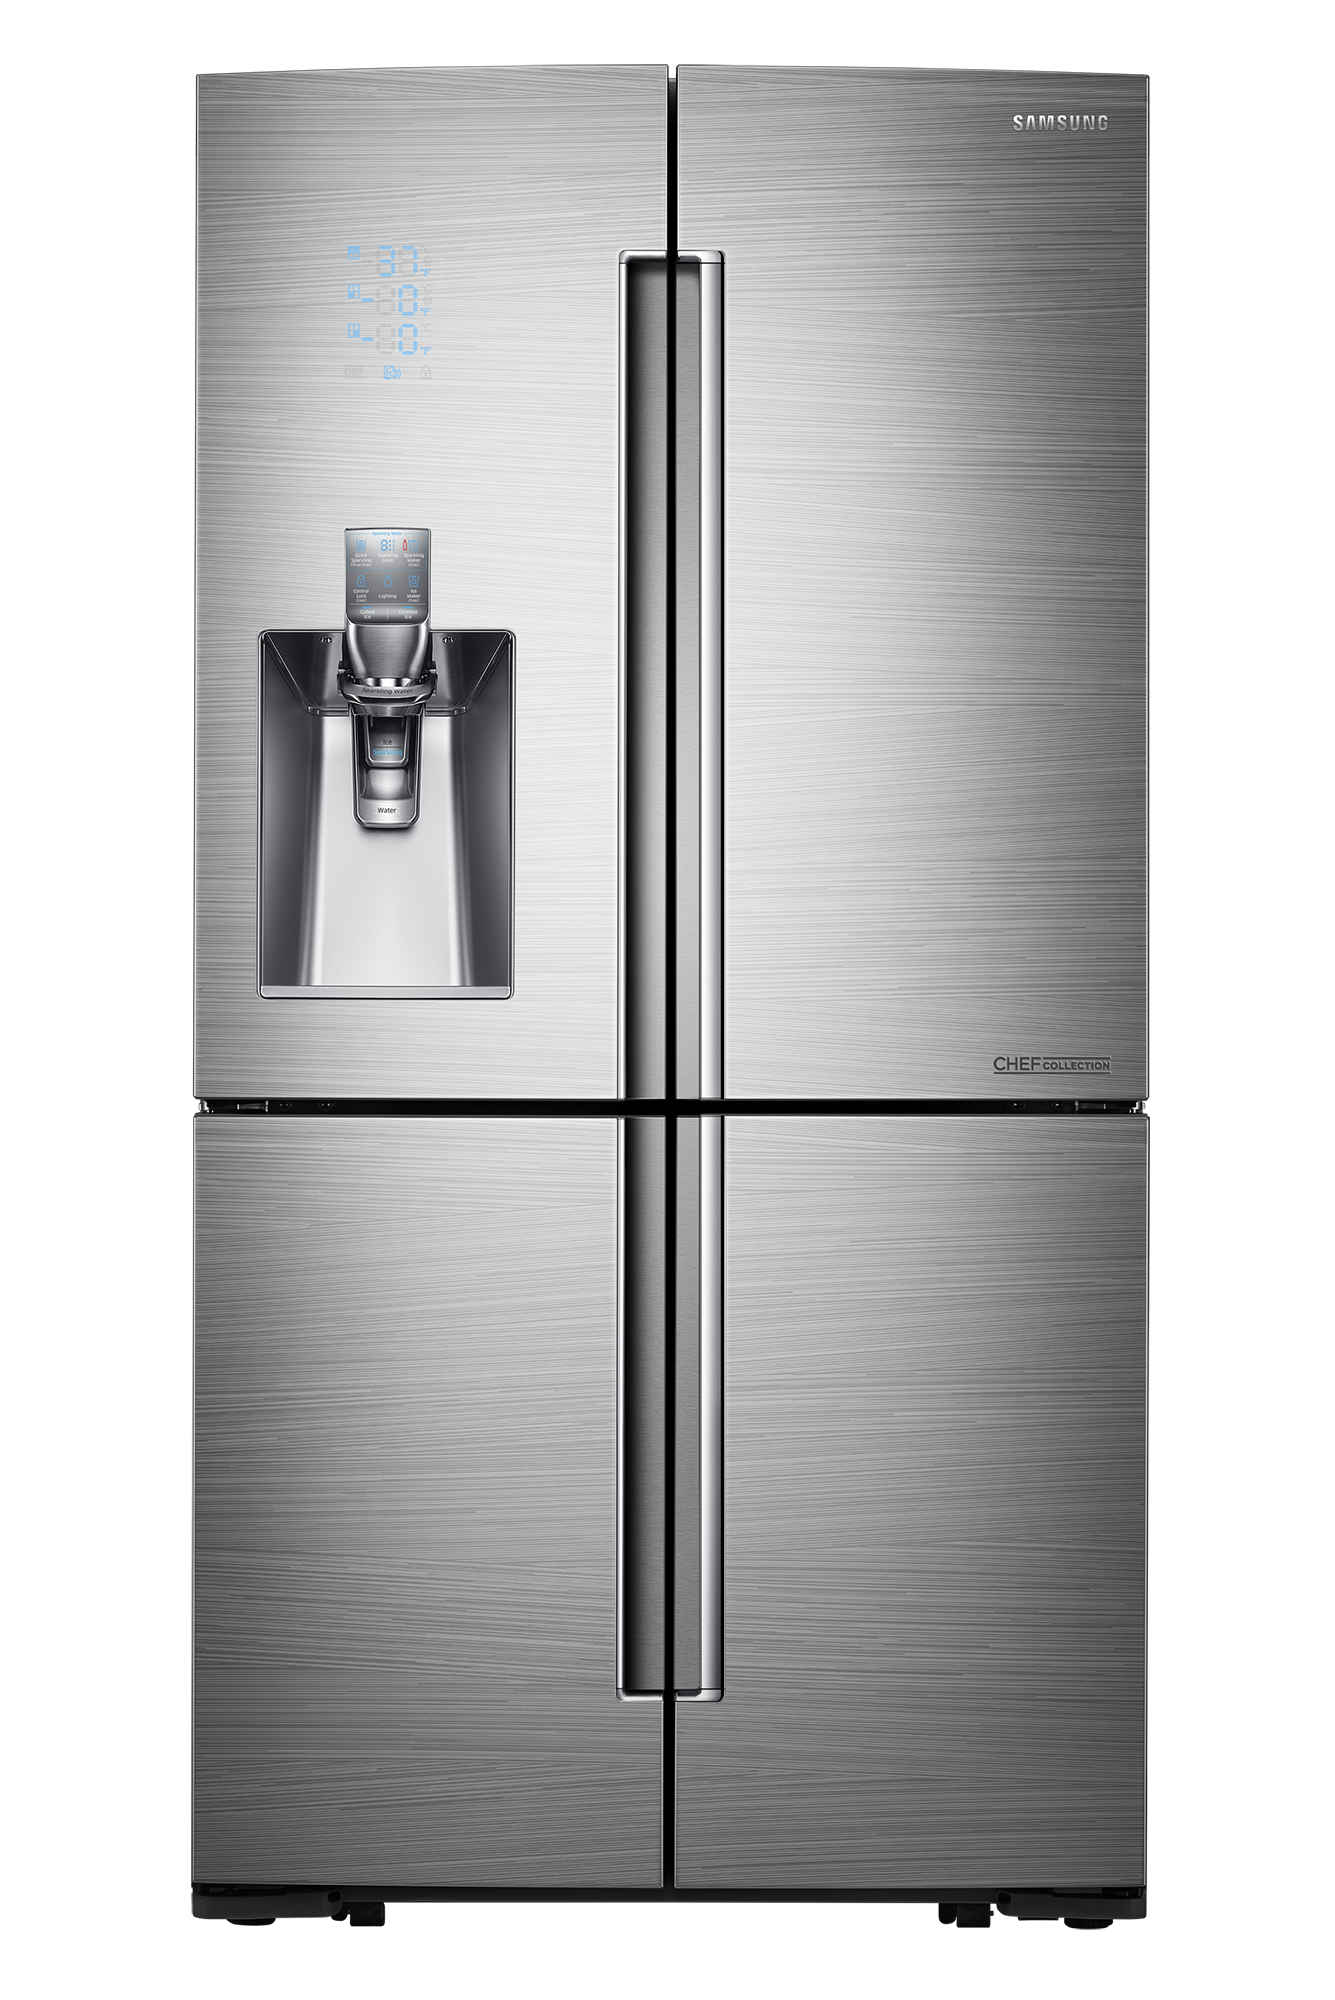 Chef Collection refrigerator